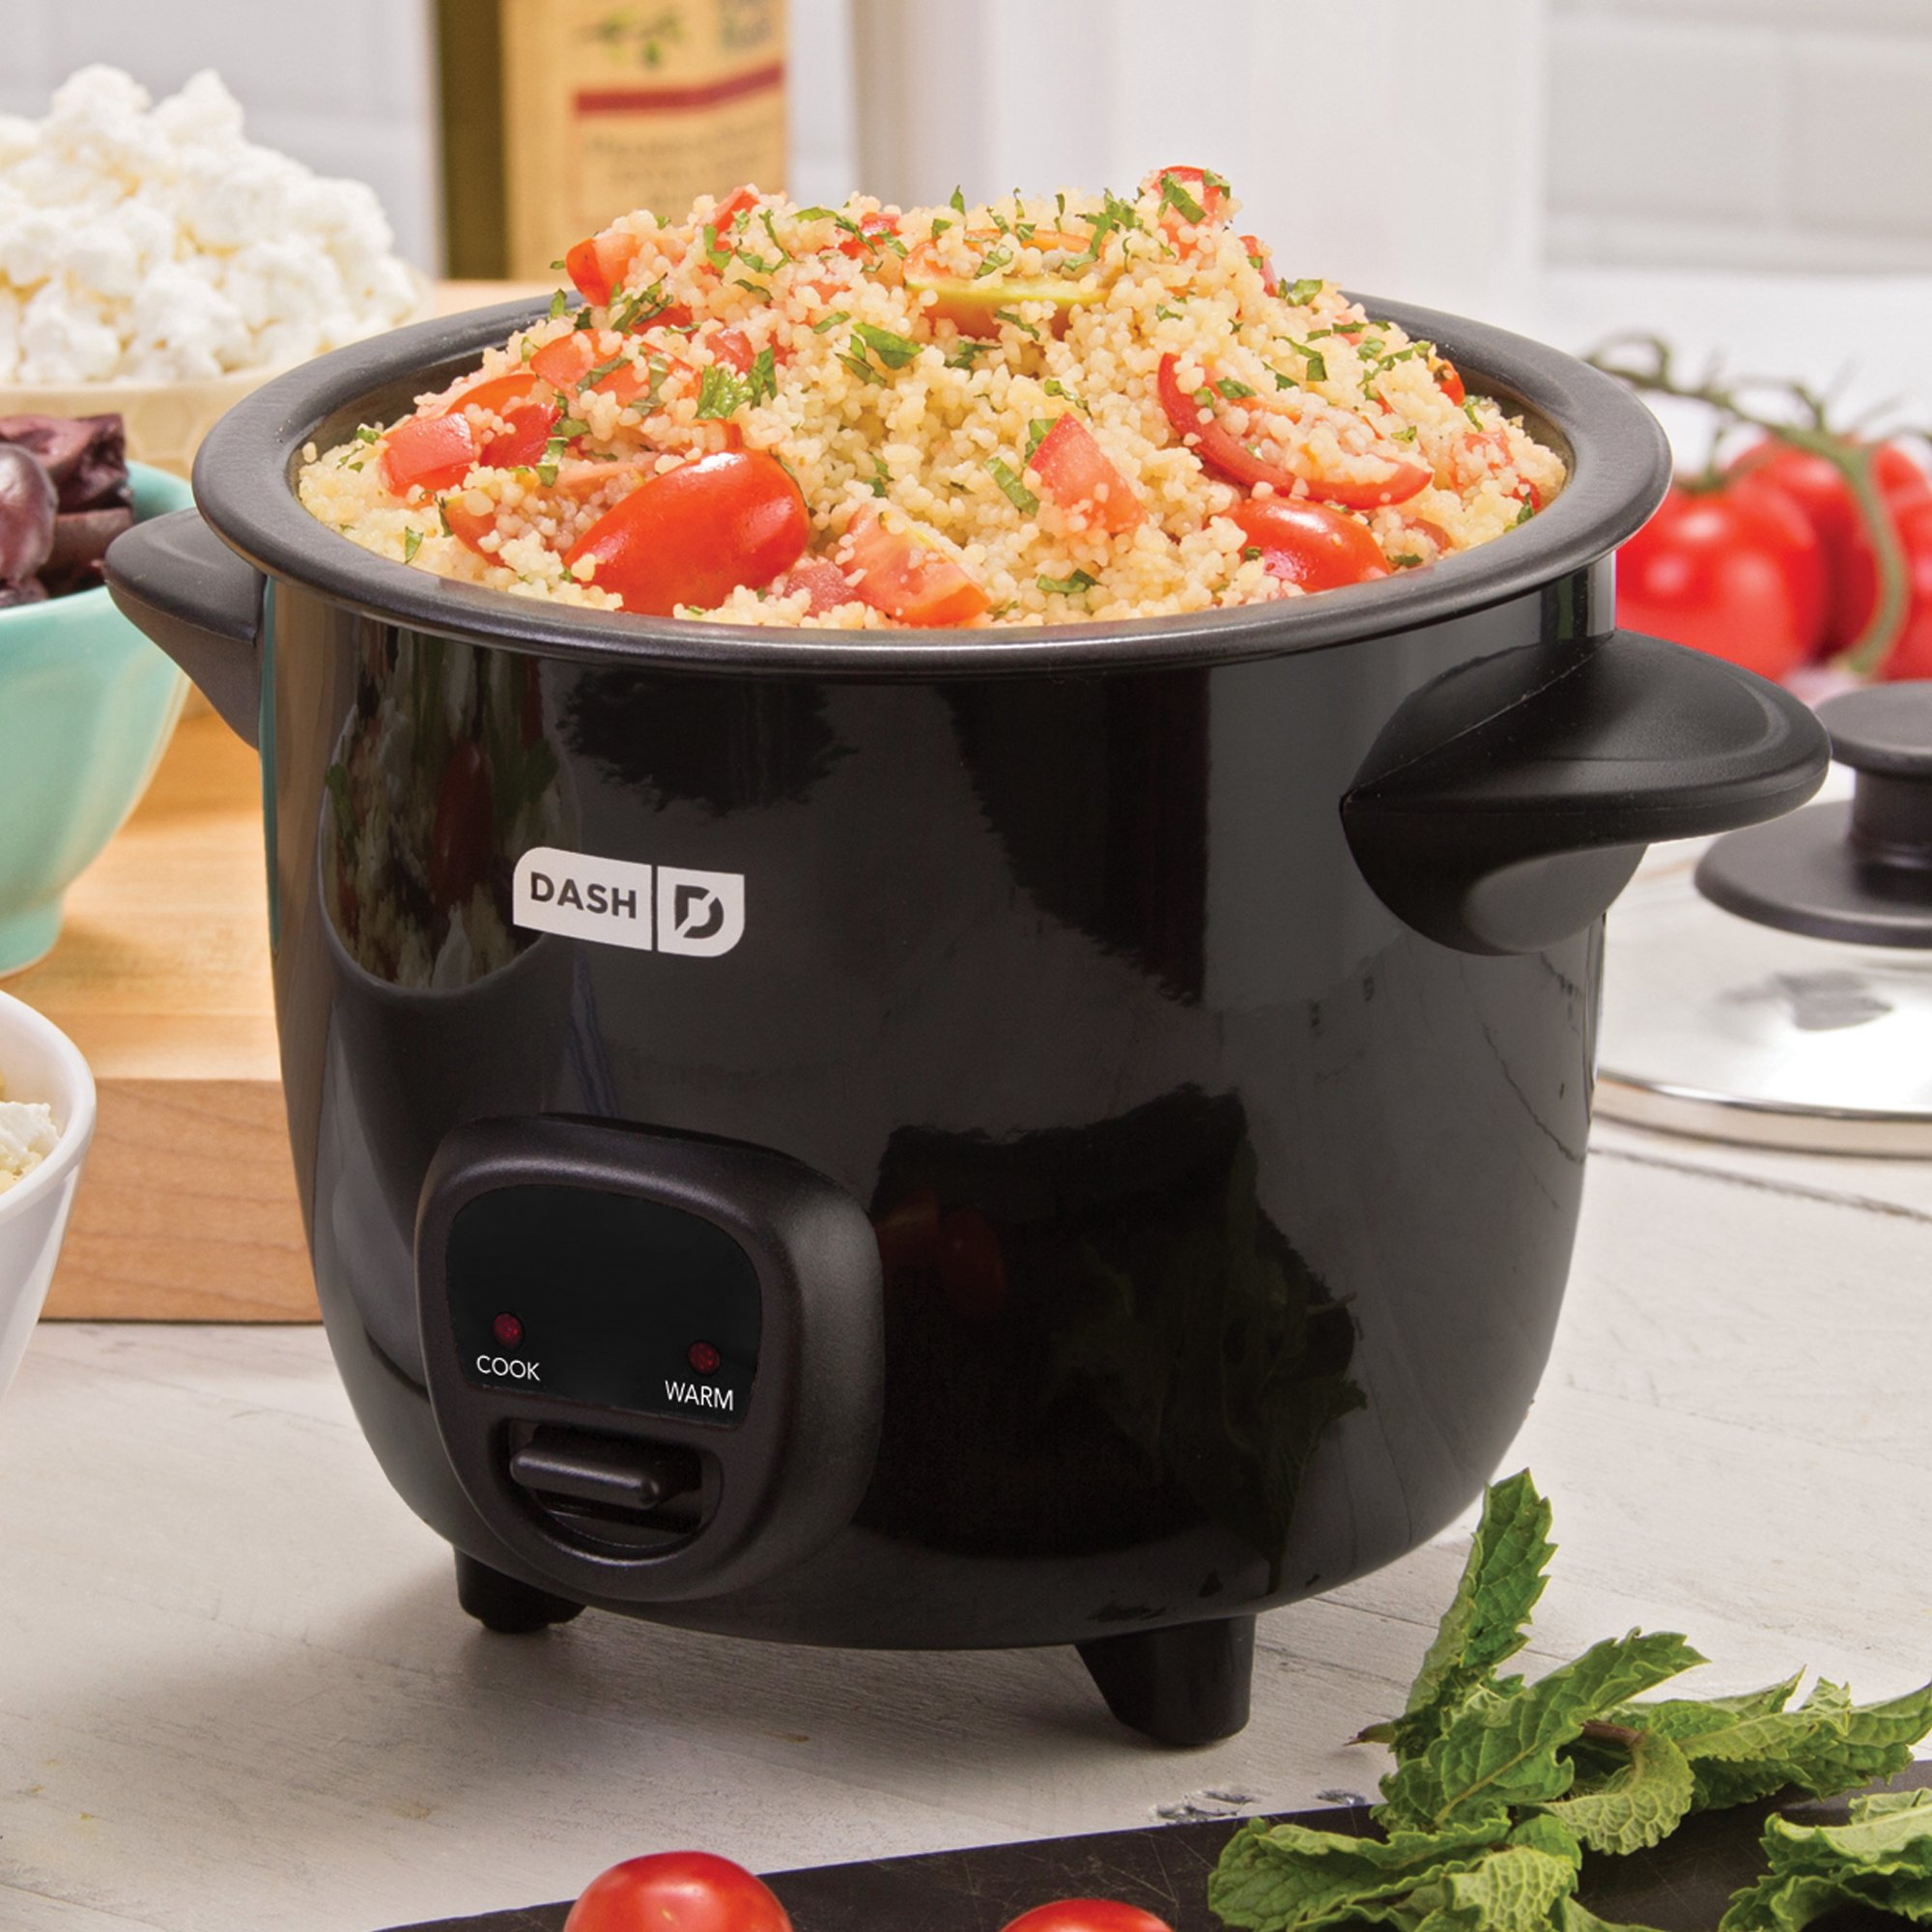 Dash DRCM200BK Mini Rice Cooker Steamer with Removable Nonstick Pot, Keep Warm Function and Recipe Guide -, 2 Cups, Great for Soups, Stews, Grains and Oatmeal -, Black by Dash (Image #2)